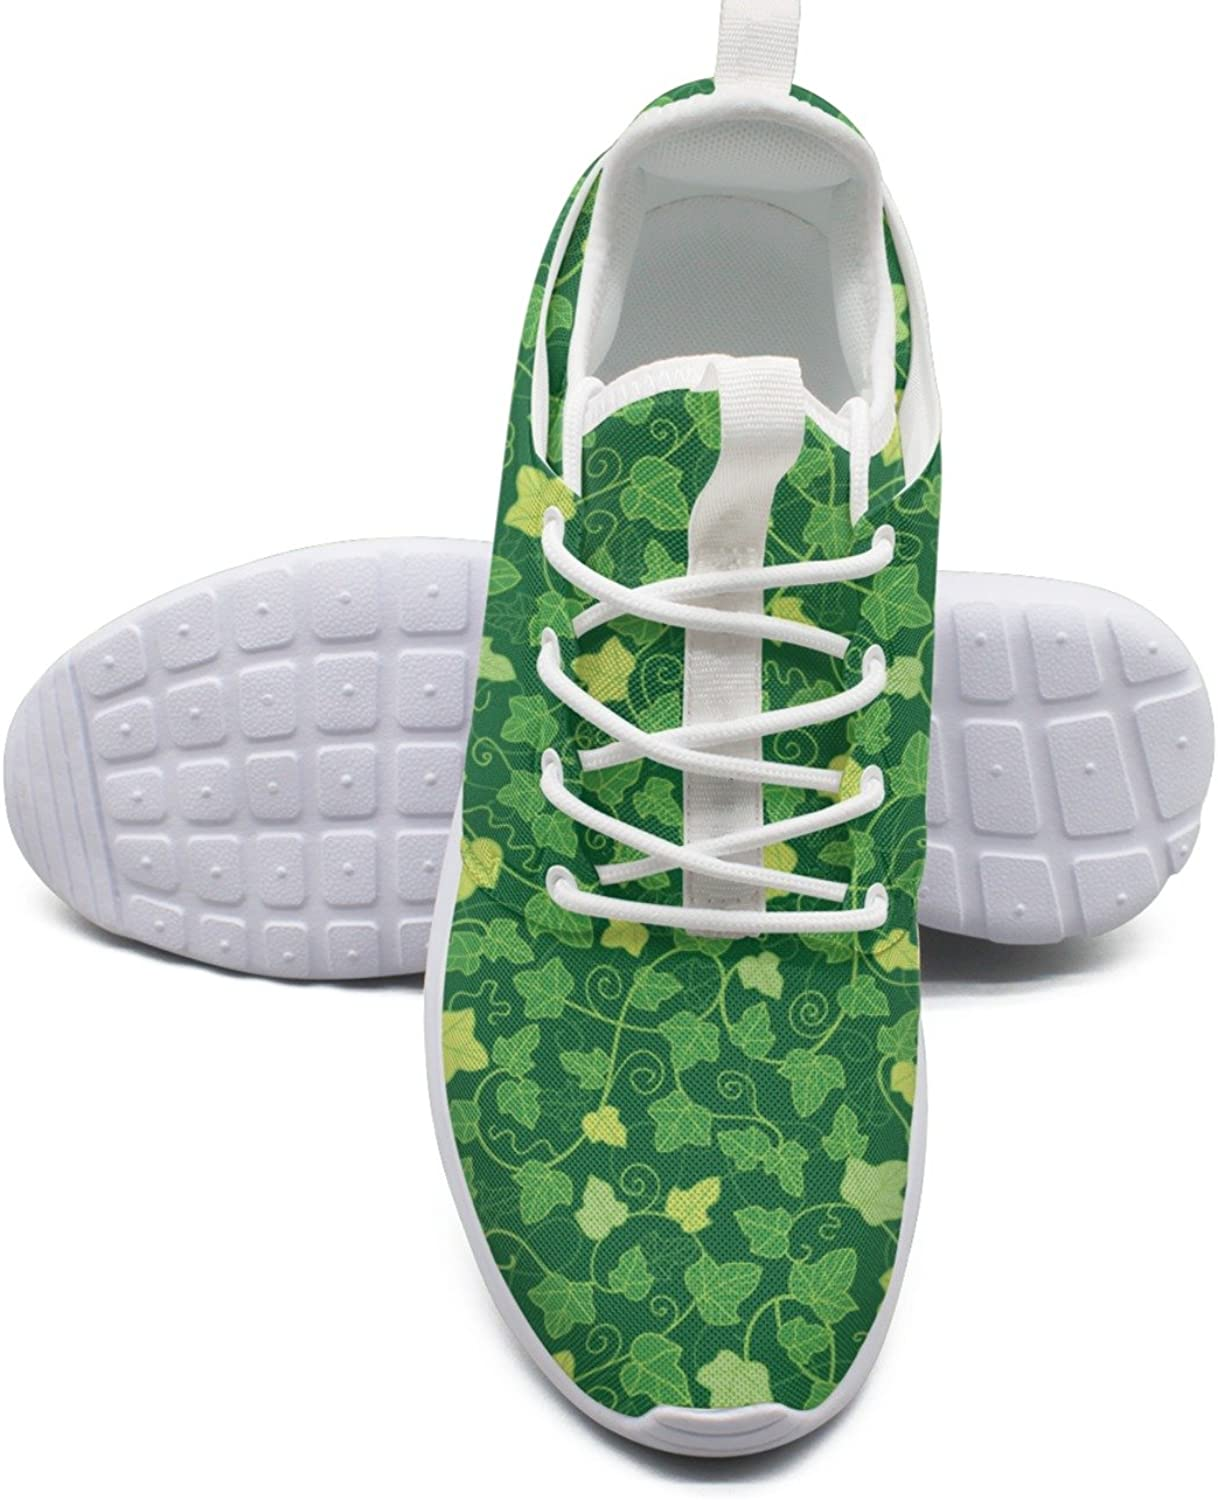 ERSER Artificial Green Ivy Planter Printed Lace-up Running shoes Women